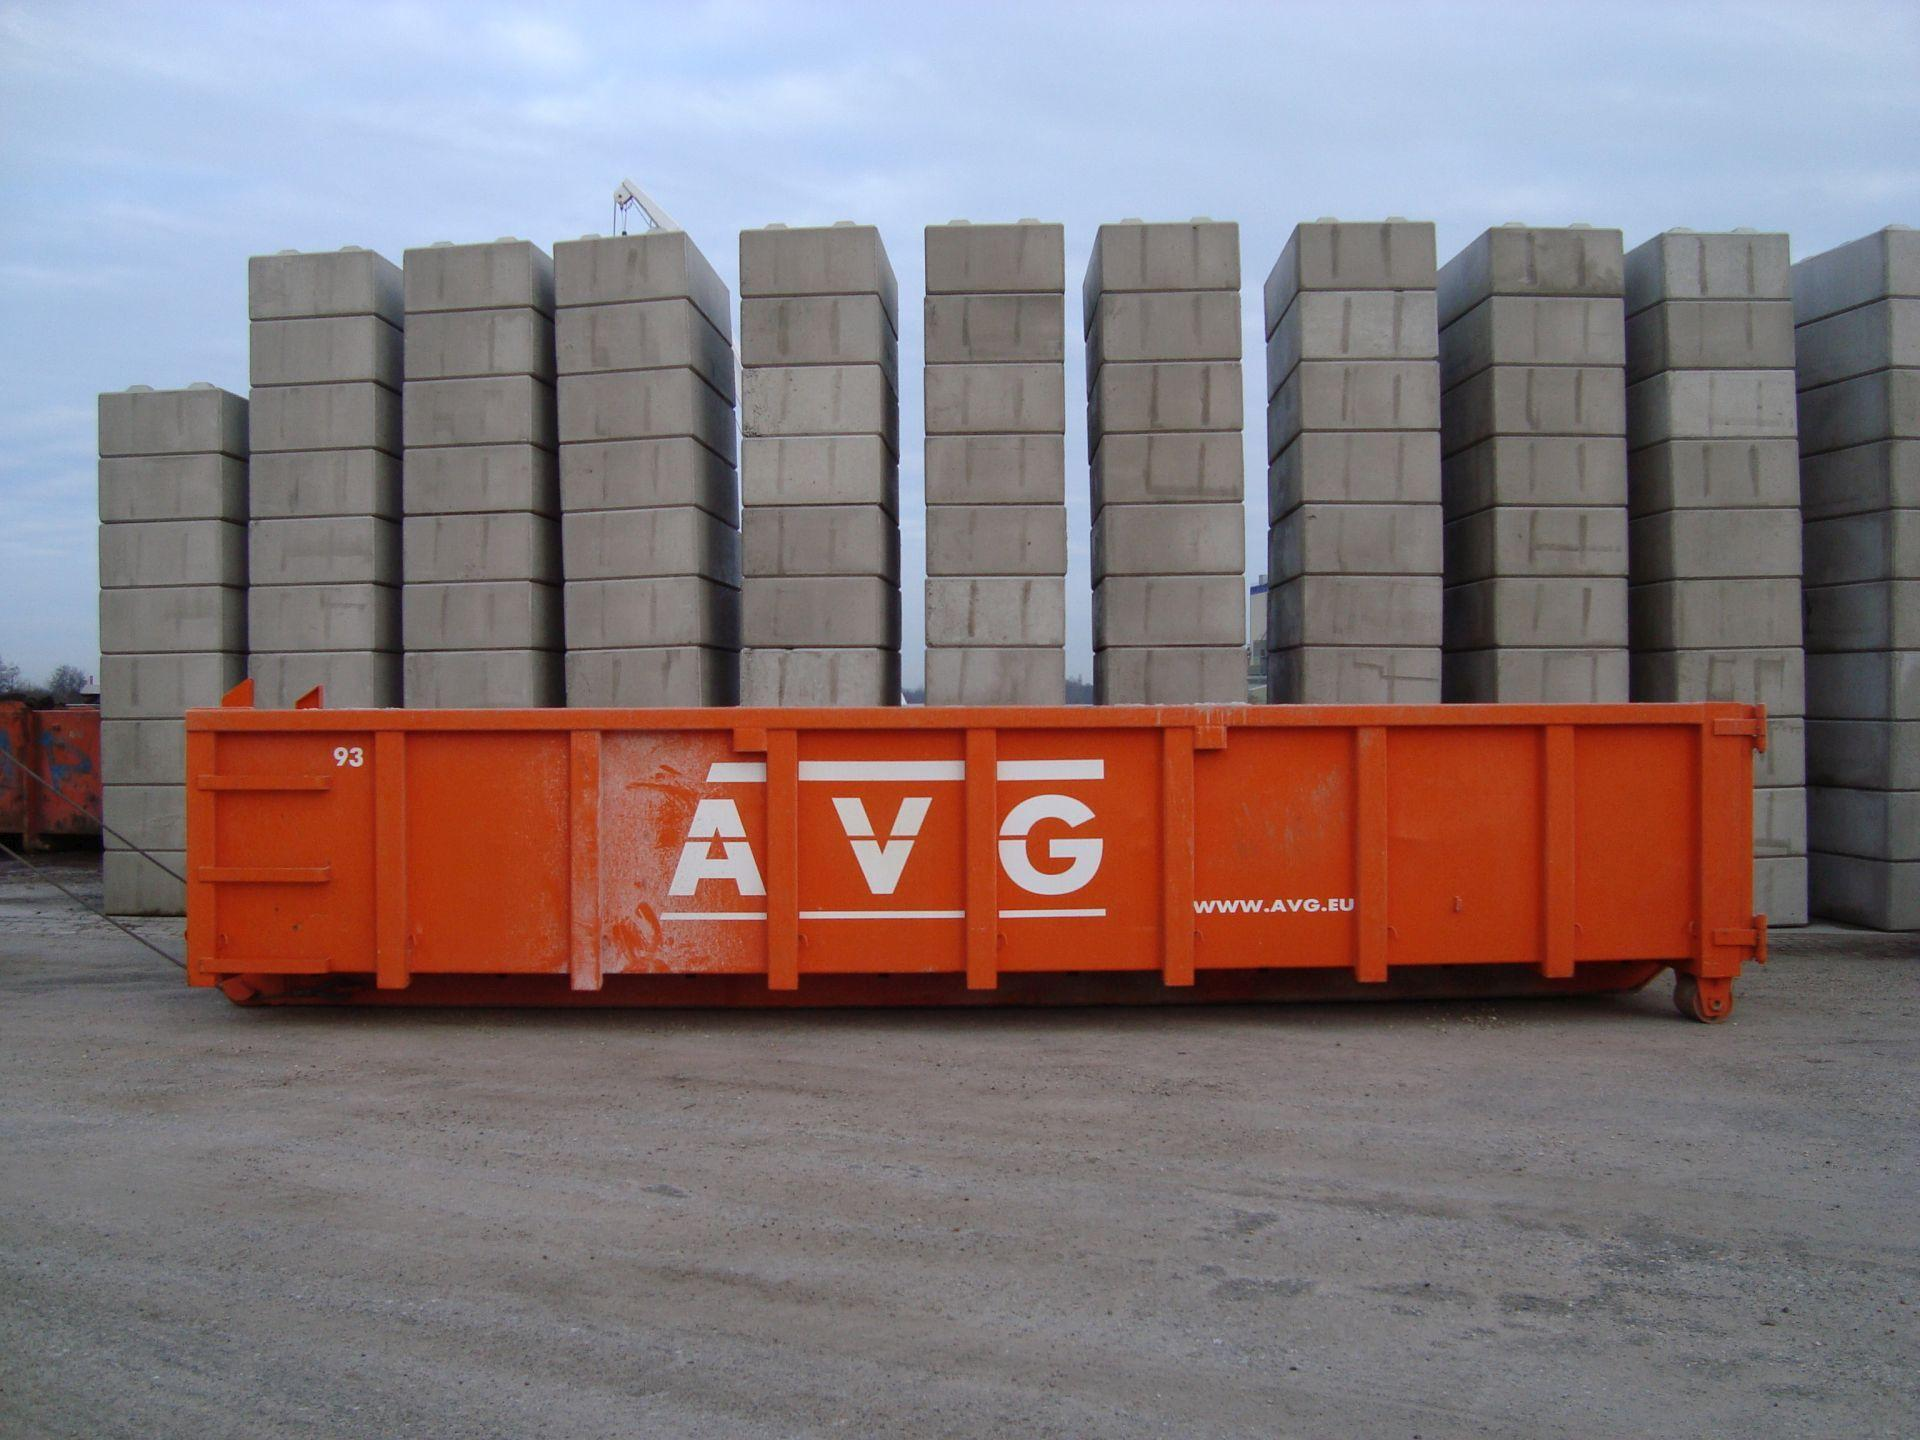 lange-container-12-avg-bouwstoffen